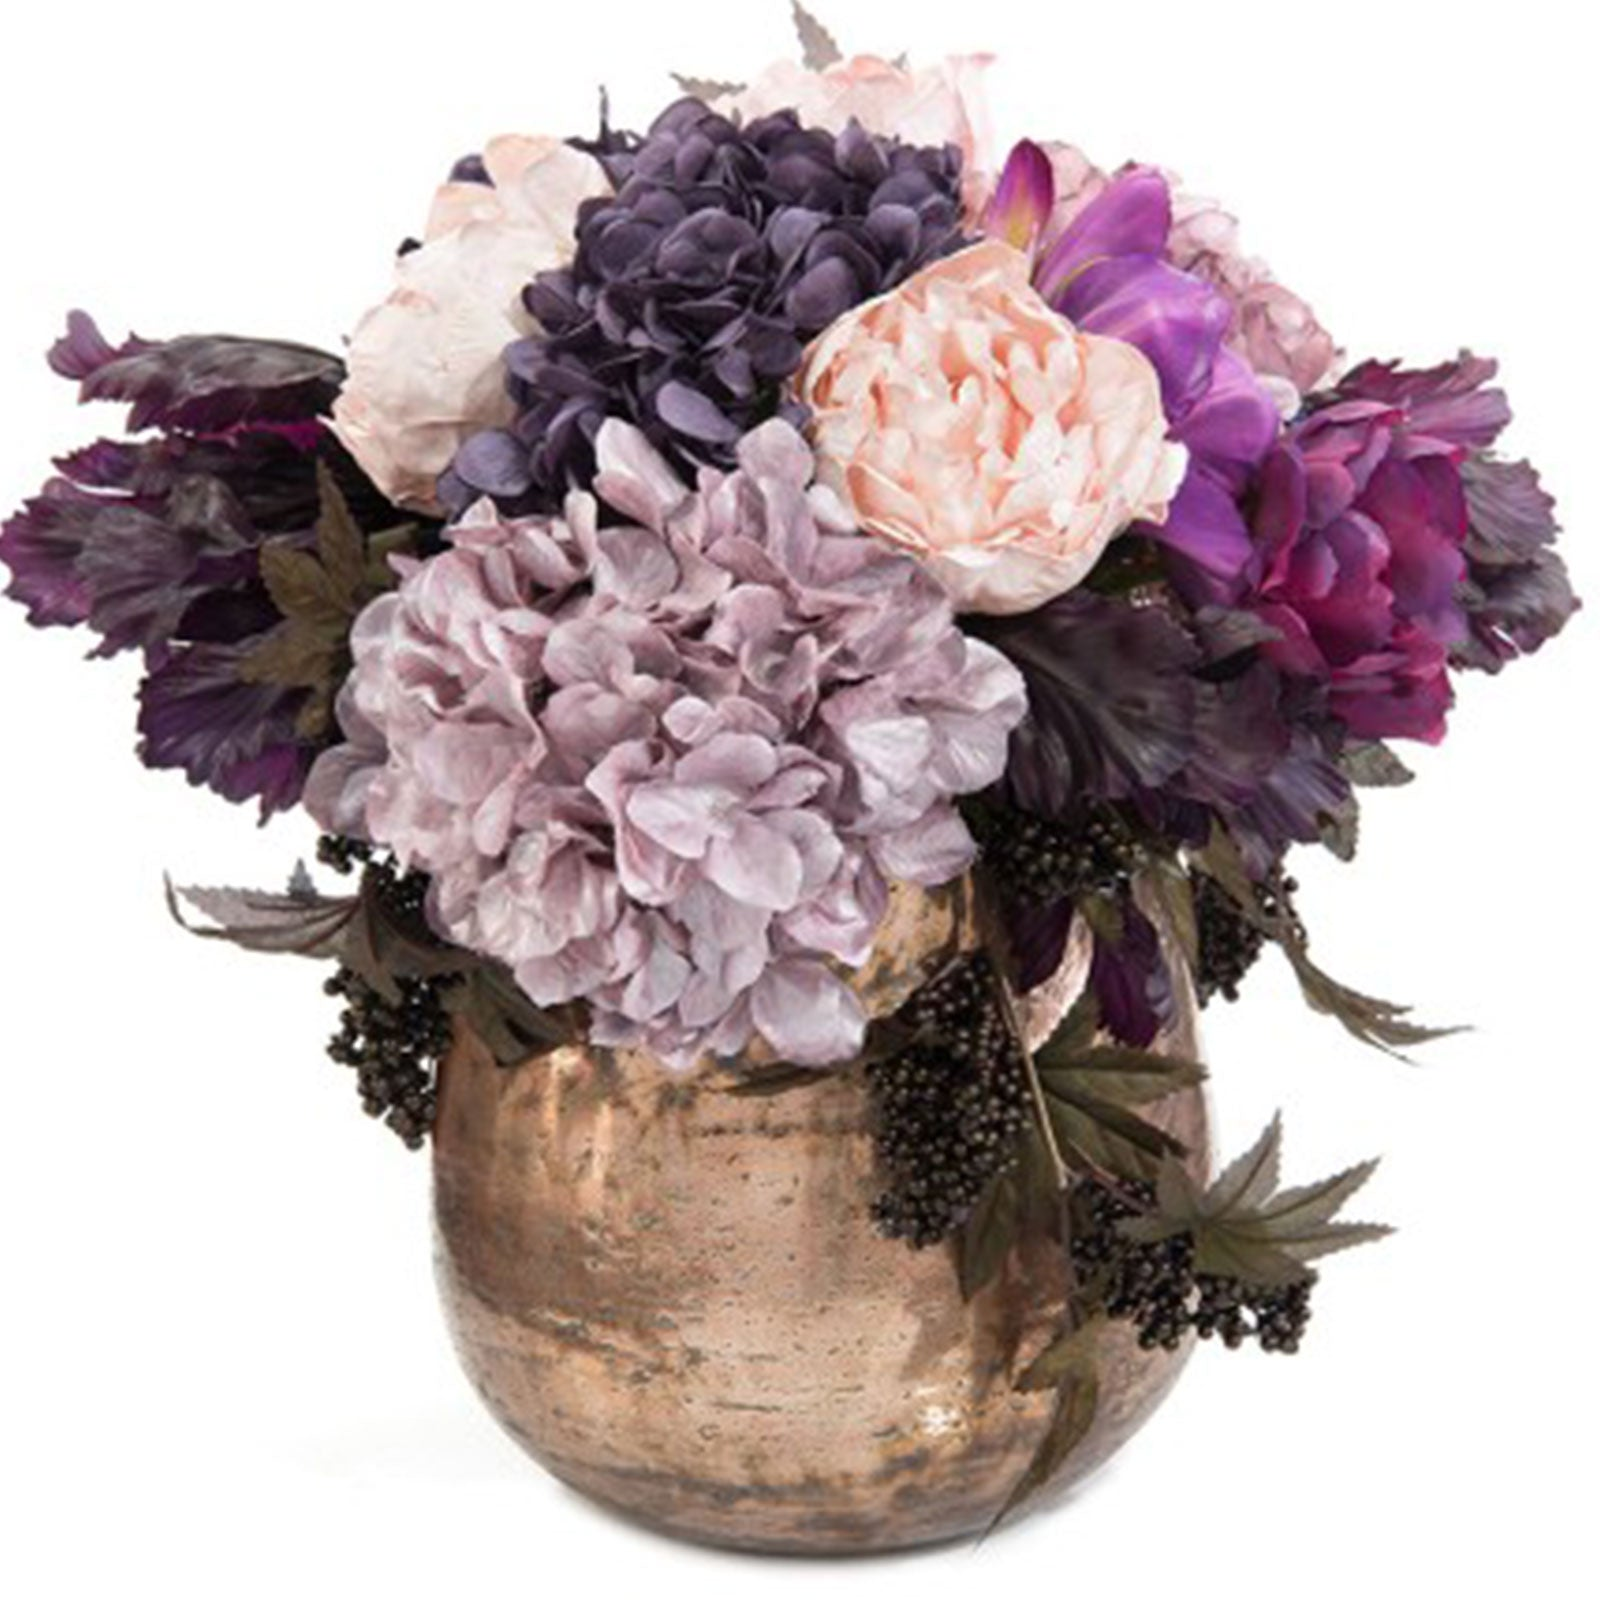 Amethyst & Pearls Floral Arrangement